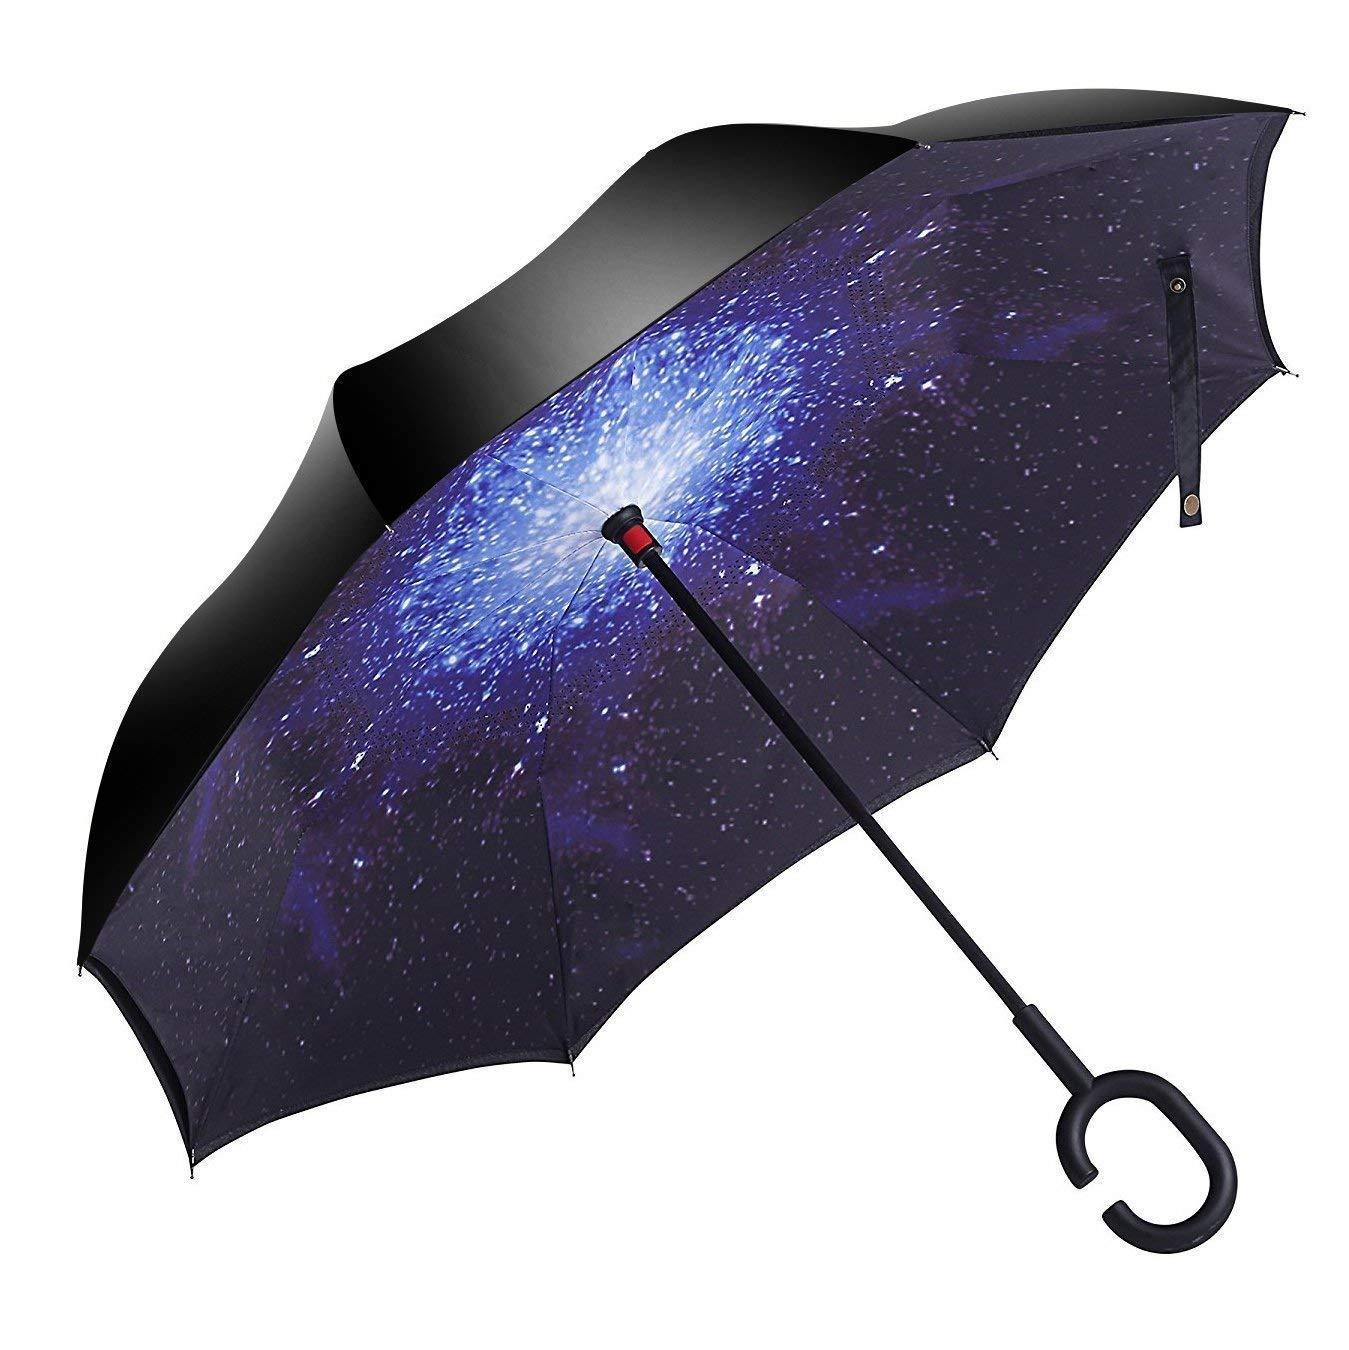 Cat Cartoon Double Layer Inverted Umbrella with C-Shaped Handle Anti-UV Waterproof Windproof Straight Umbrella for Car Rain Outdoor Use